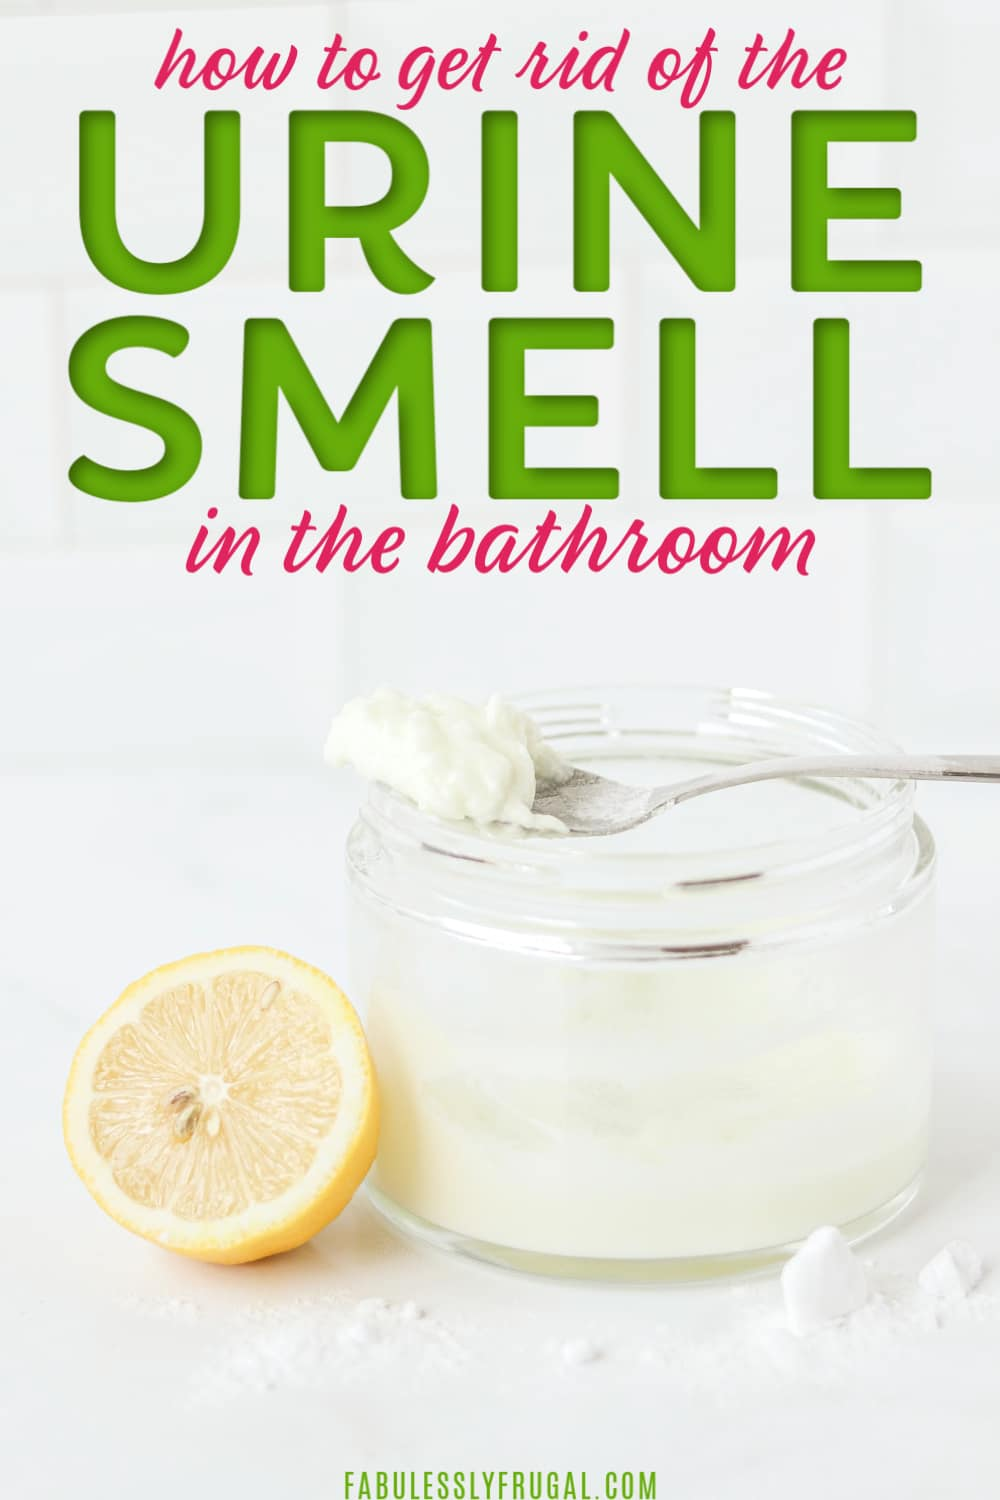 How to get rid of toilet odor